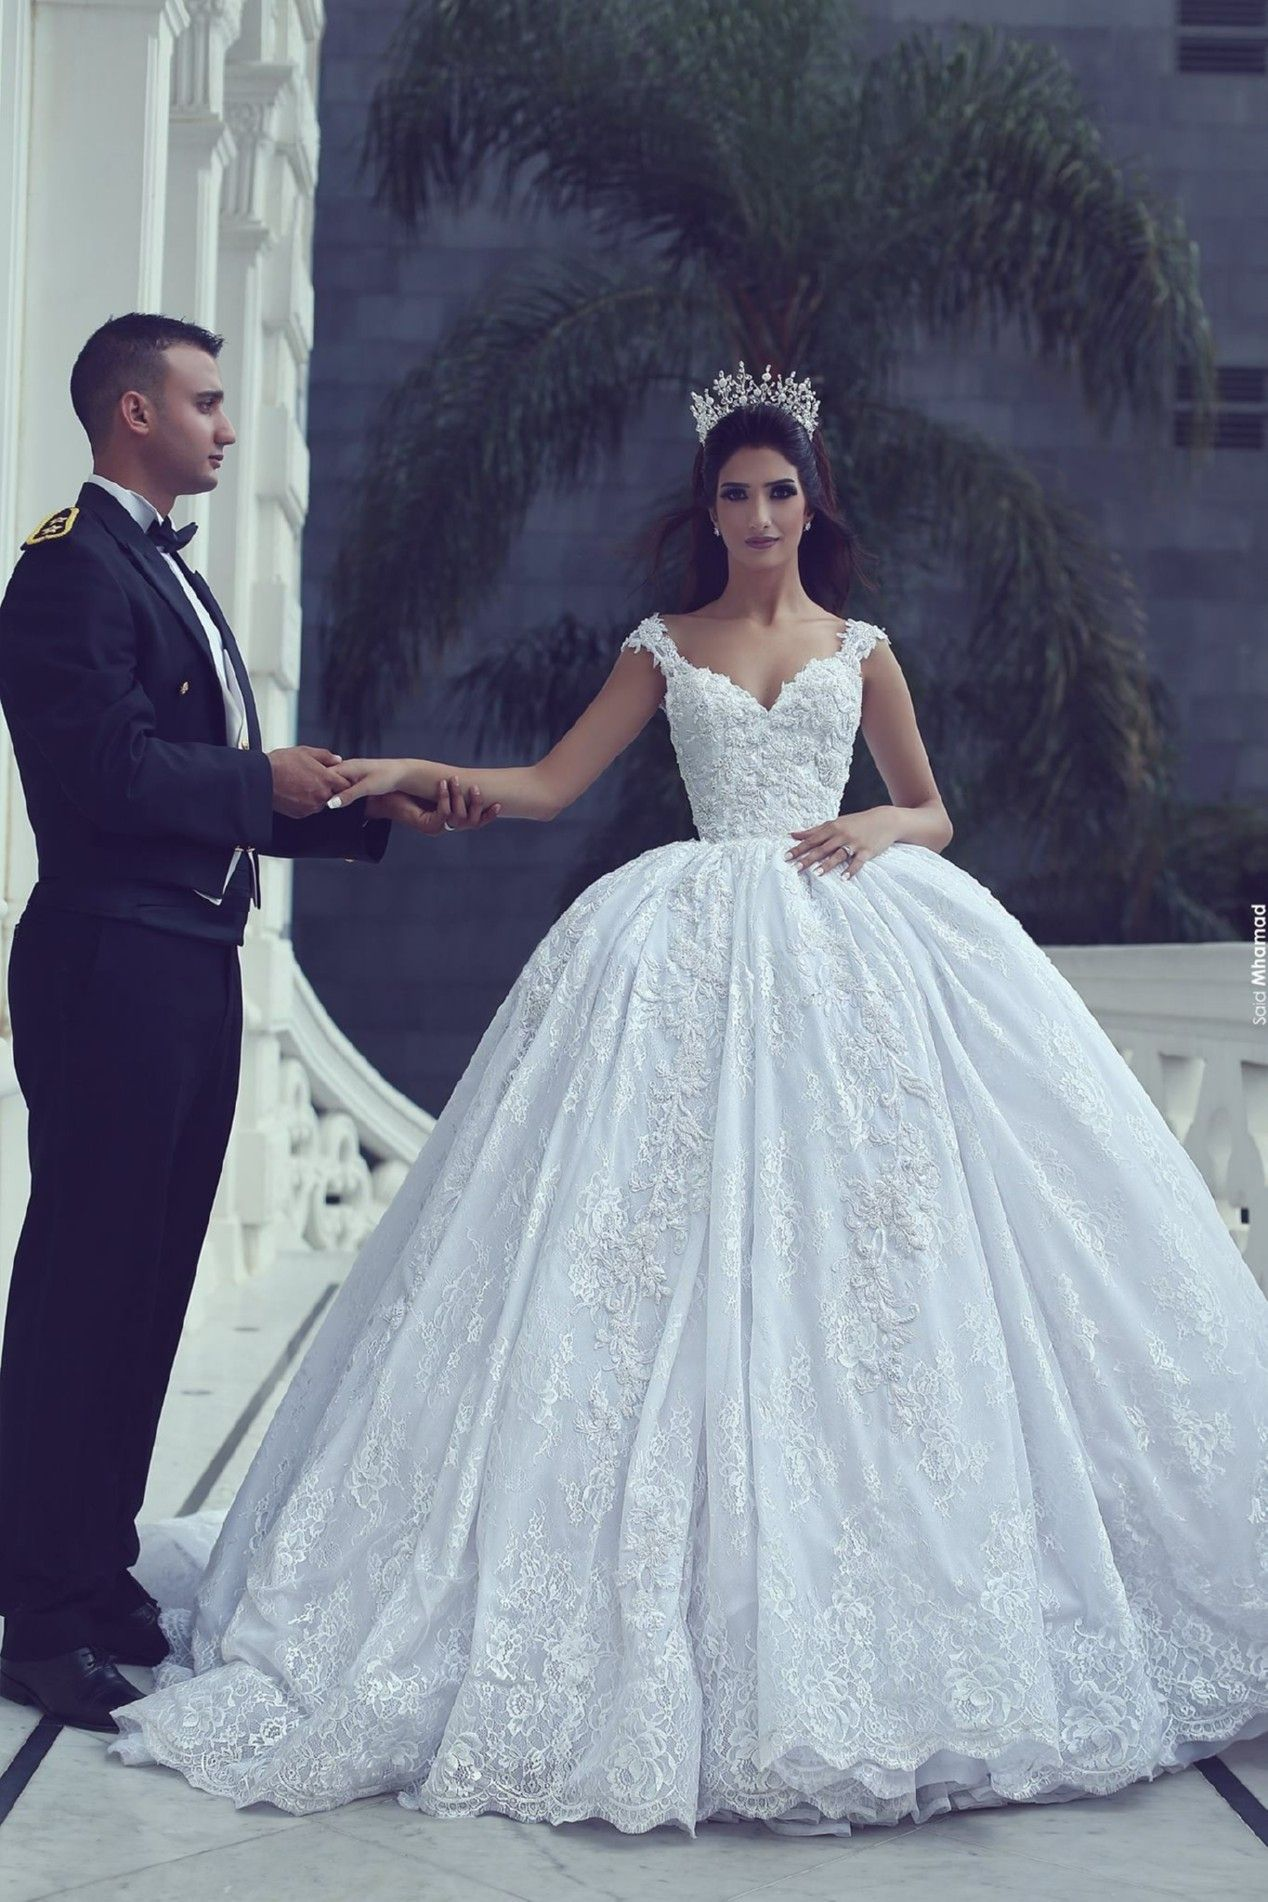 55 Breathtaking Disney Princess Wedding Dress to Fullfill your ...